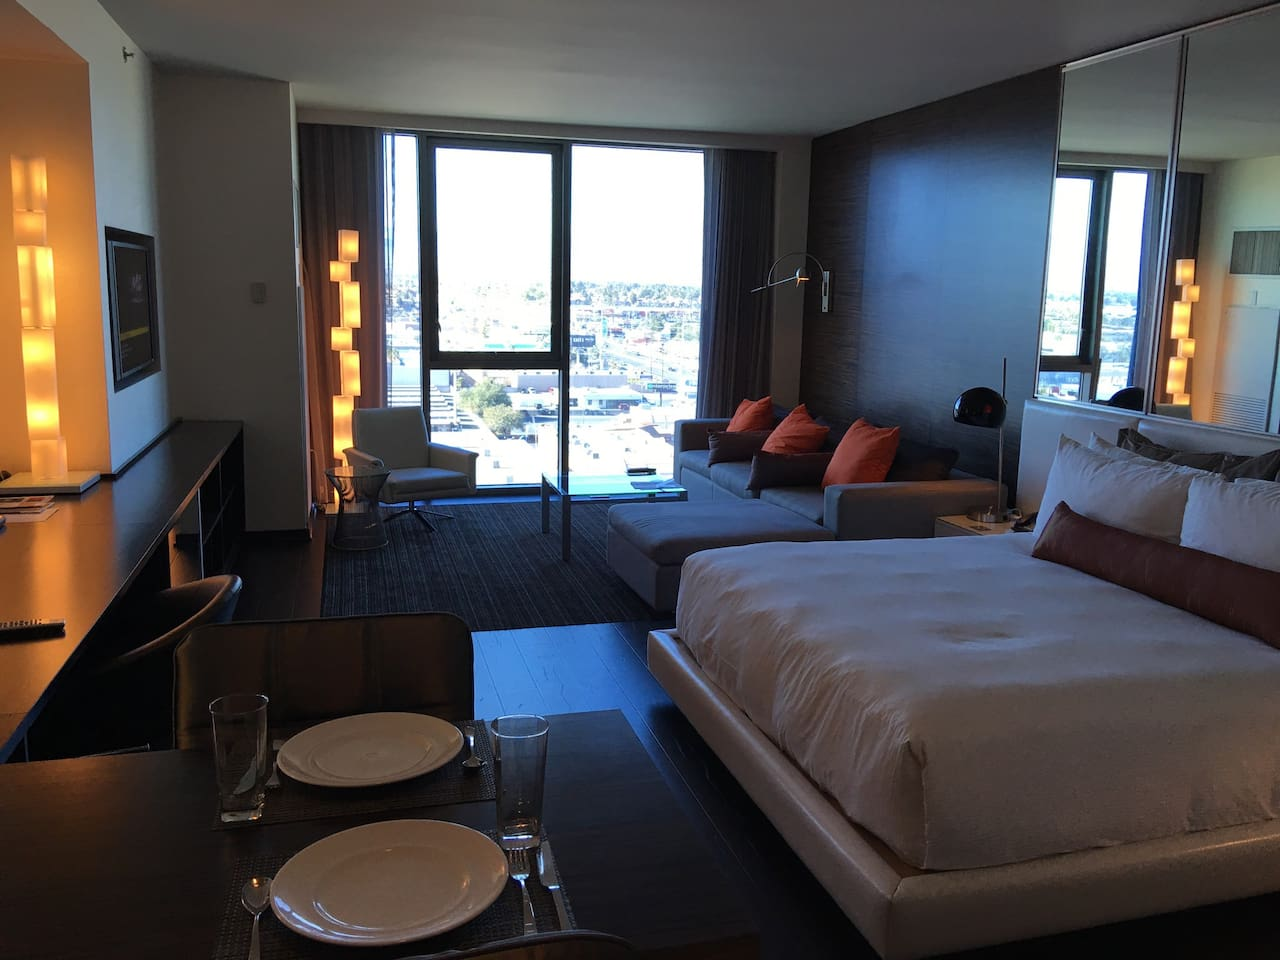 Palms Place 2 Bedroom Suite Palms Place High Rise Condominiums For Rent In Las Vegas Nevada